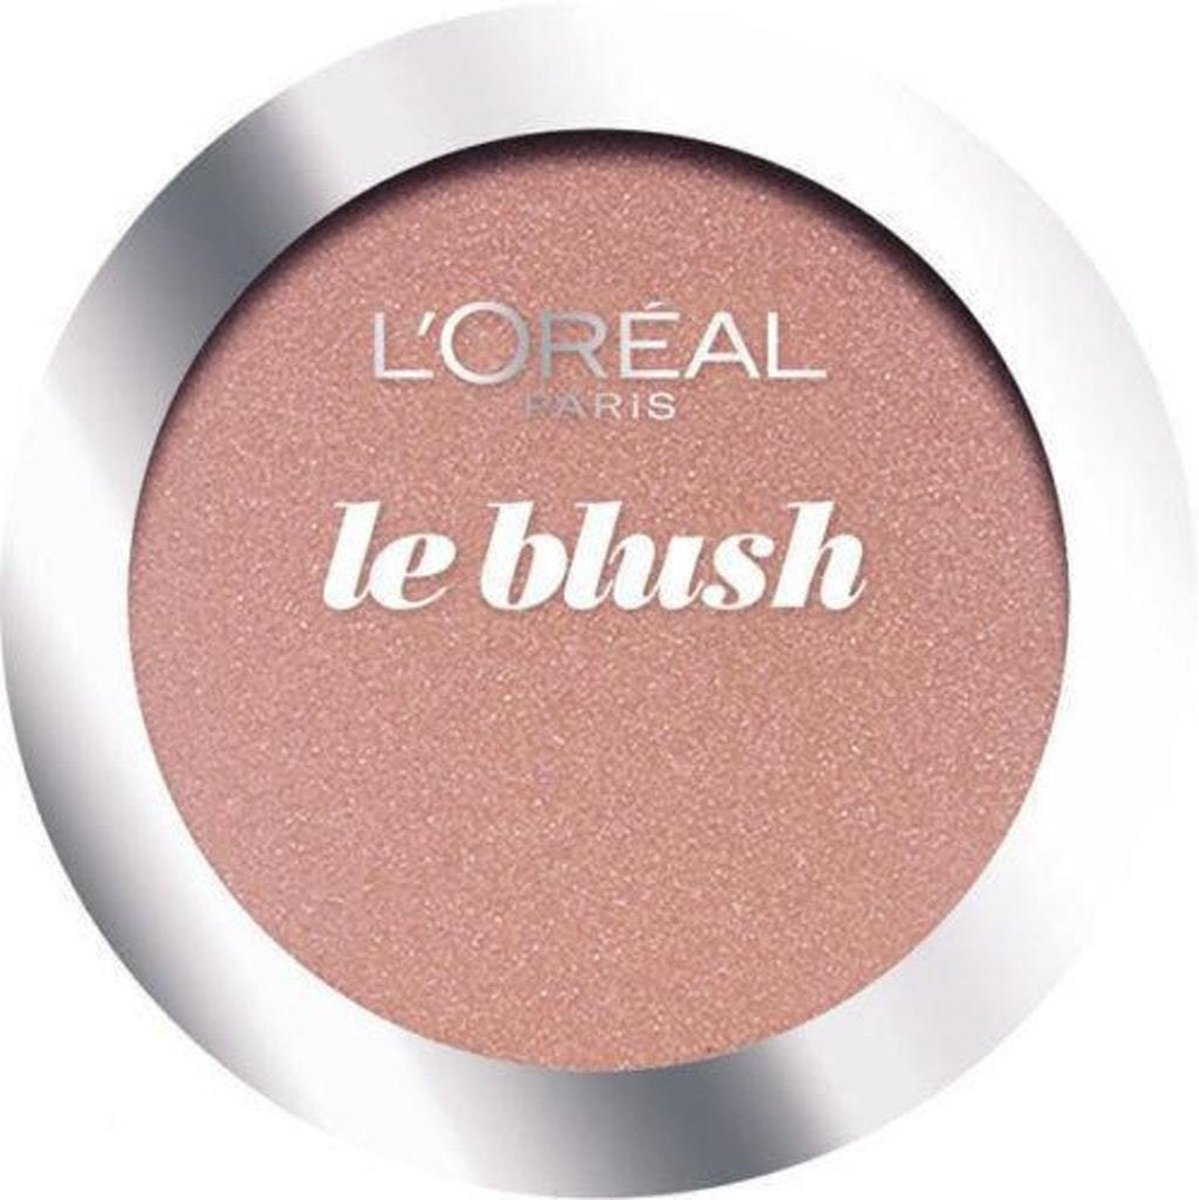 LOréal Paris True Match Blush - 140 Old Rose